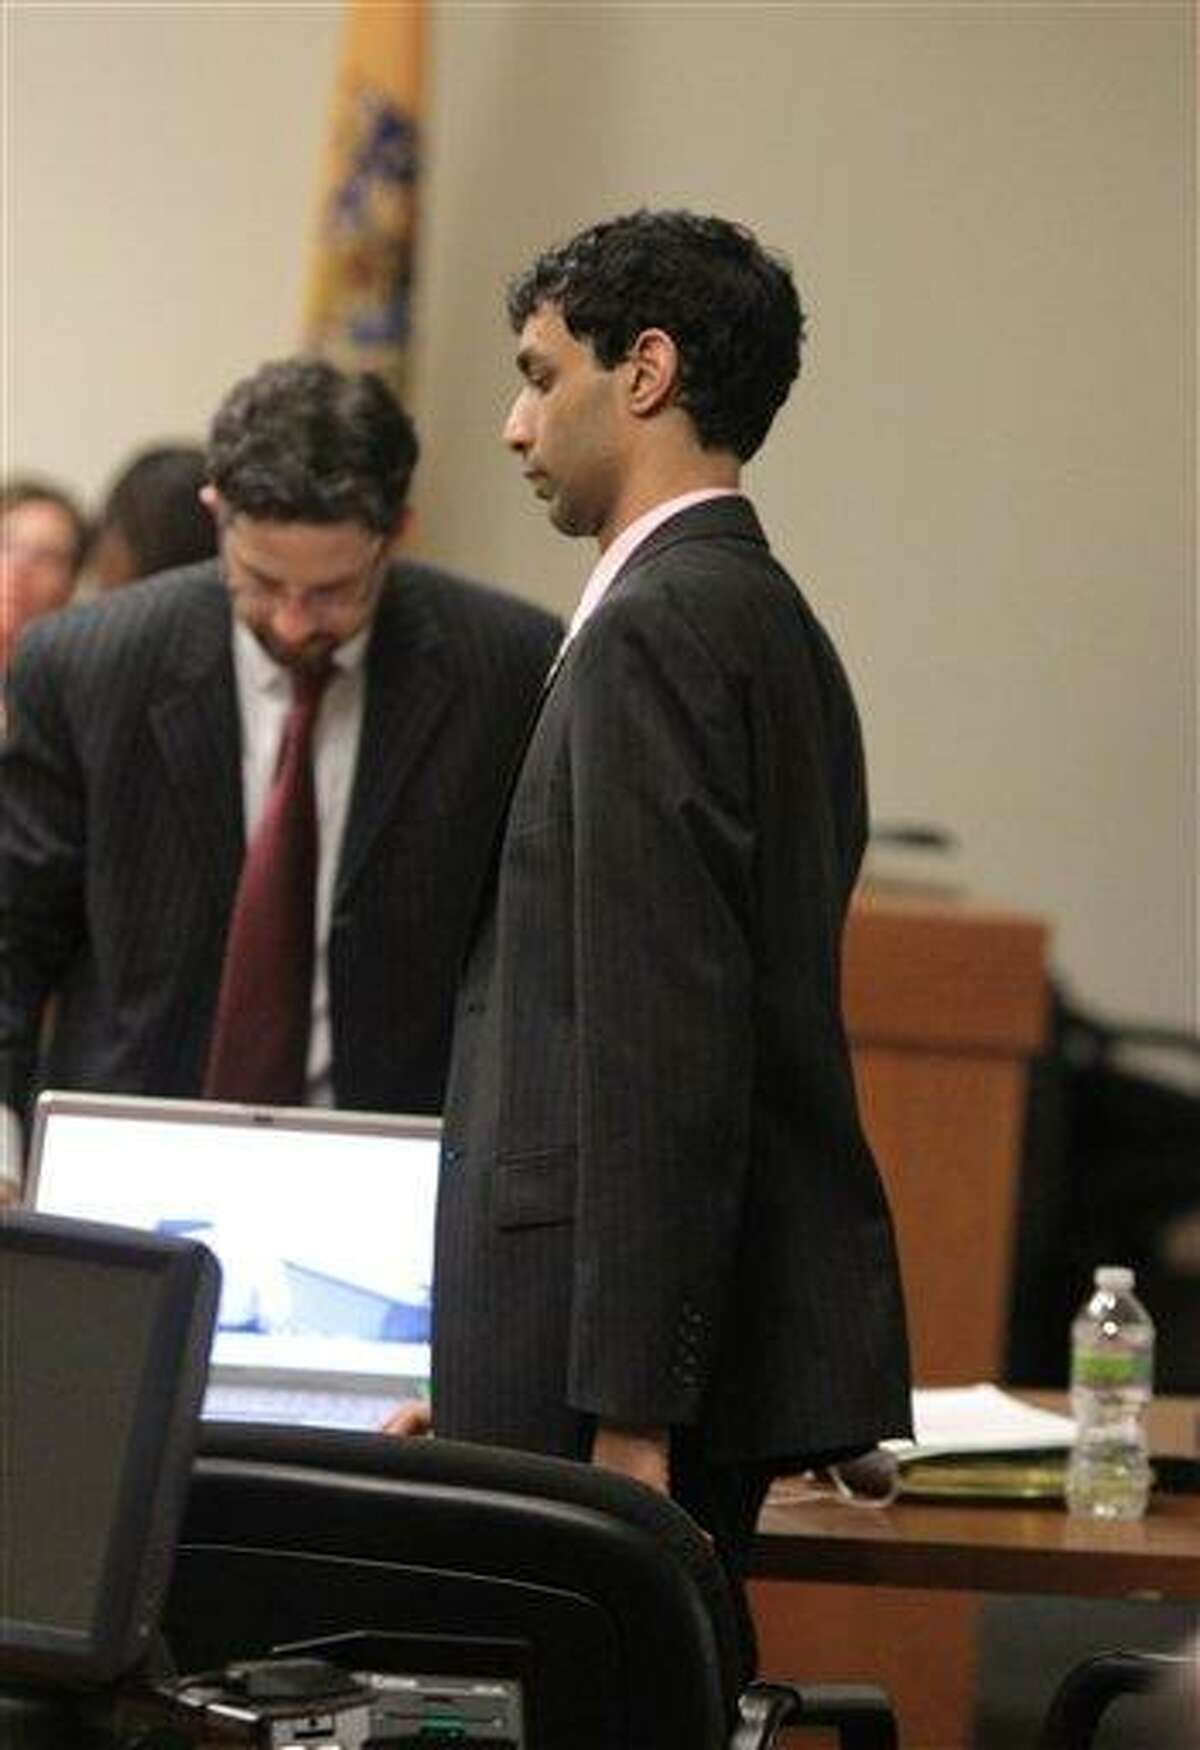 Defense attorney Philip Nettl, left, and former Rutgers student Dharun Ravi wait for the start of summations earlier this week at Ravi's trial at the Middlesex County Courthouse in New Brunswick, N.J. Associated Press